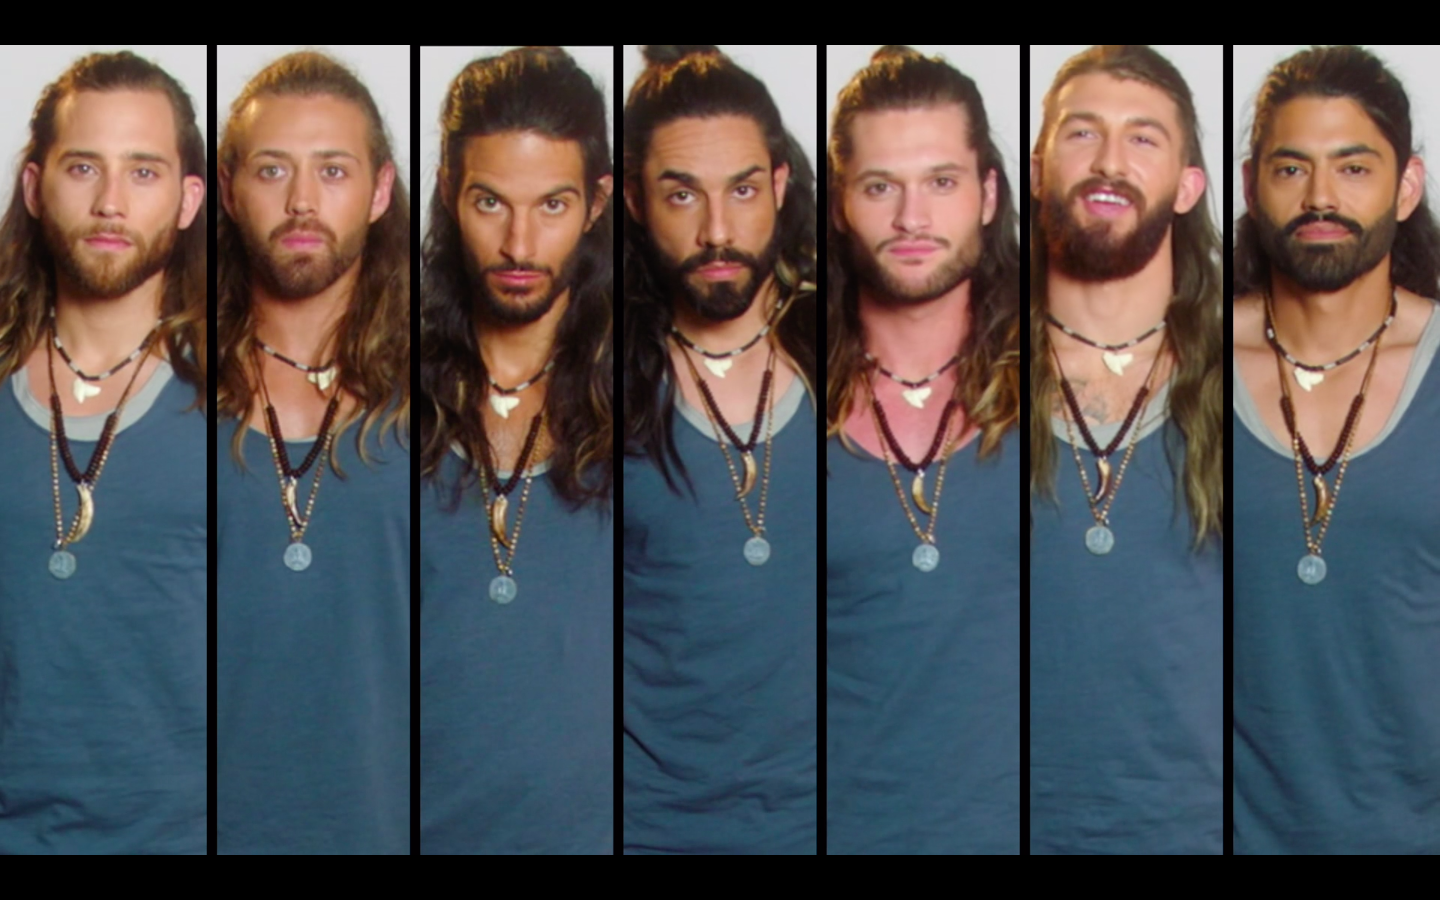 Creepy MTV dating show sets you up with celebrity clones